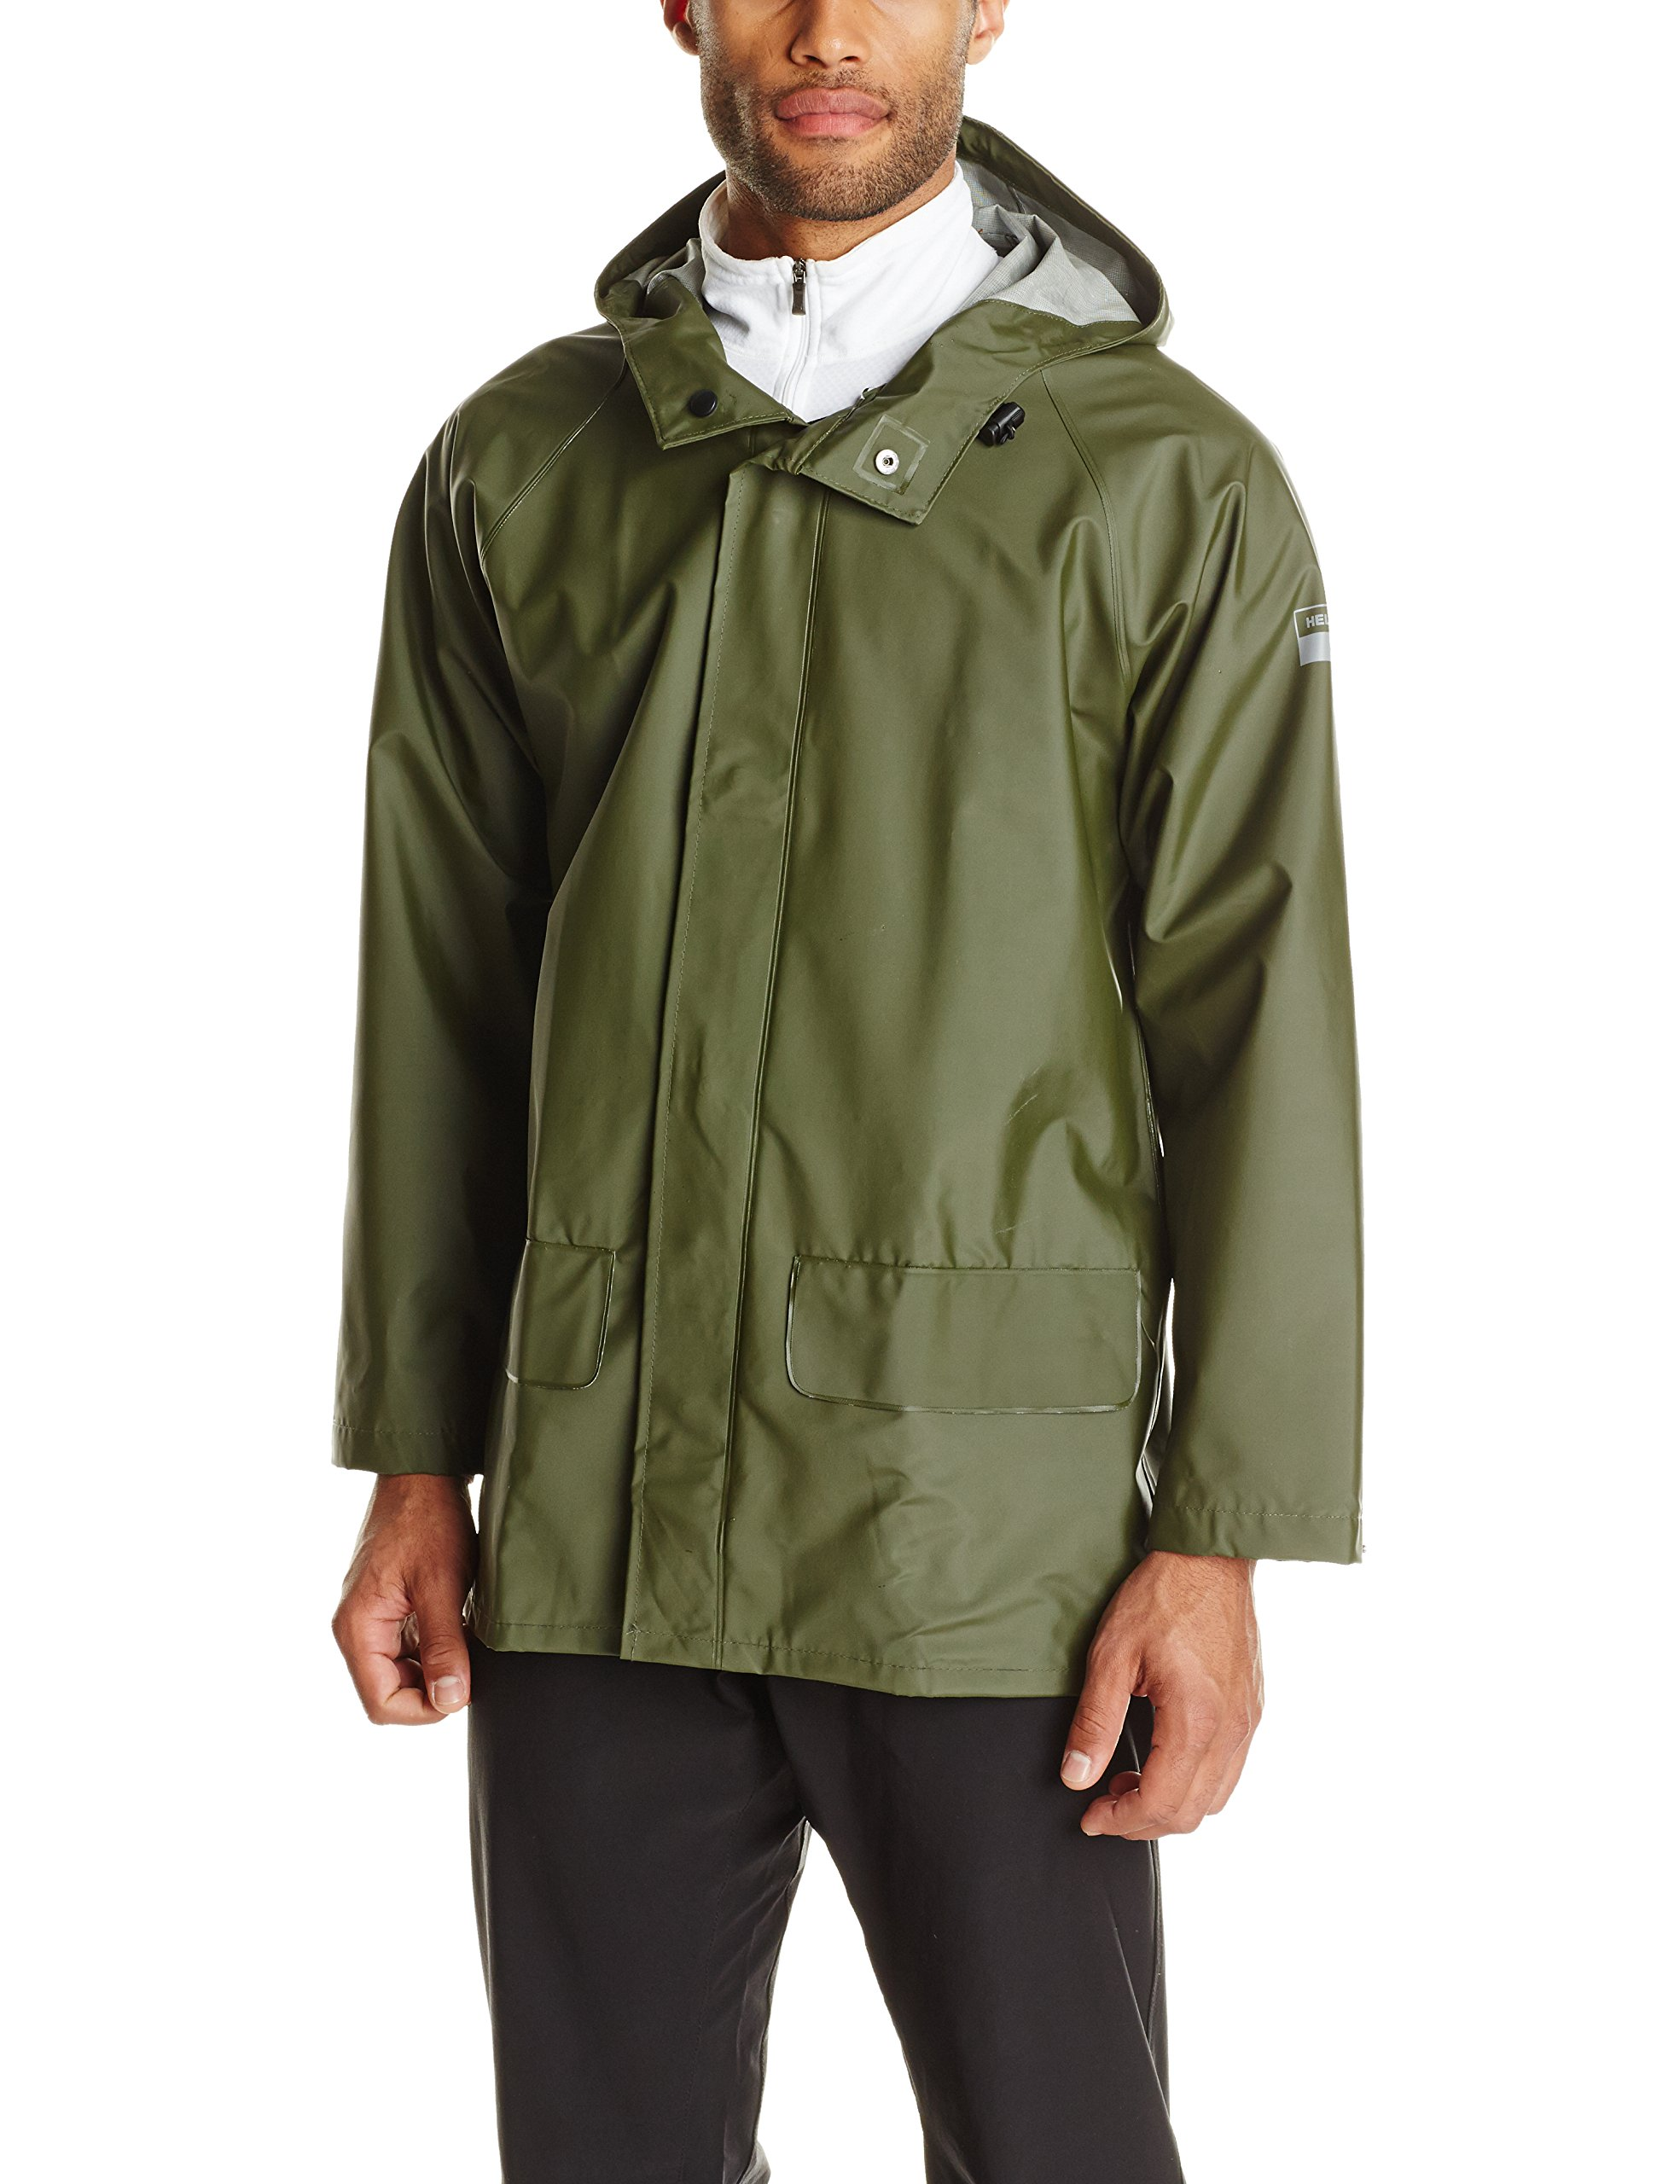 Helly Hansen Workwear Men's Mandal Rain Jacket, Army Green, Large by Helly Hansen